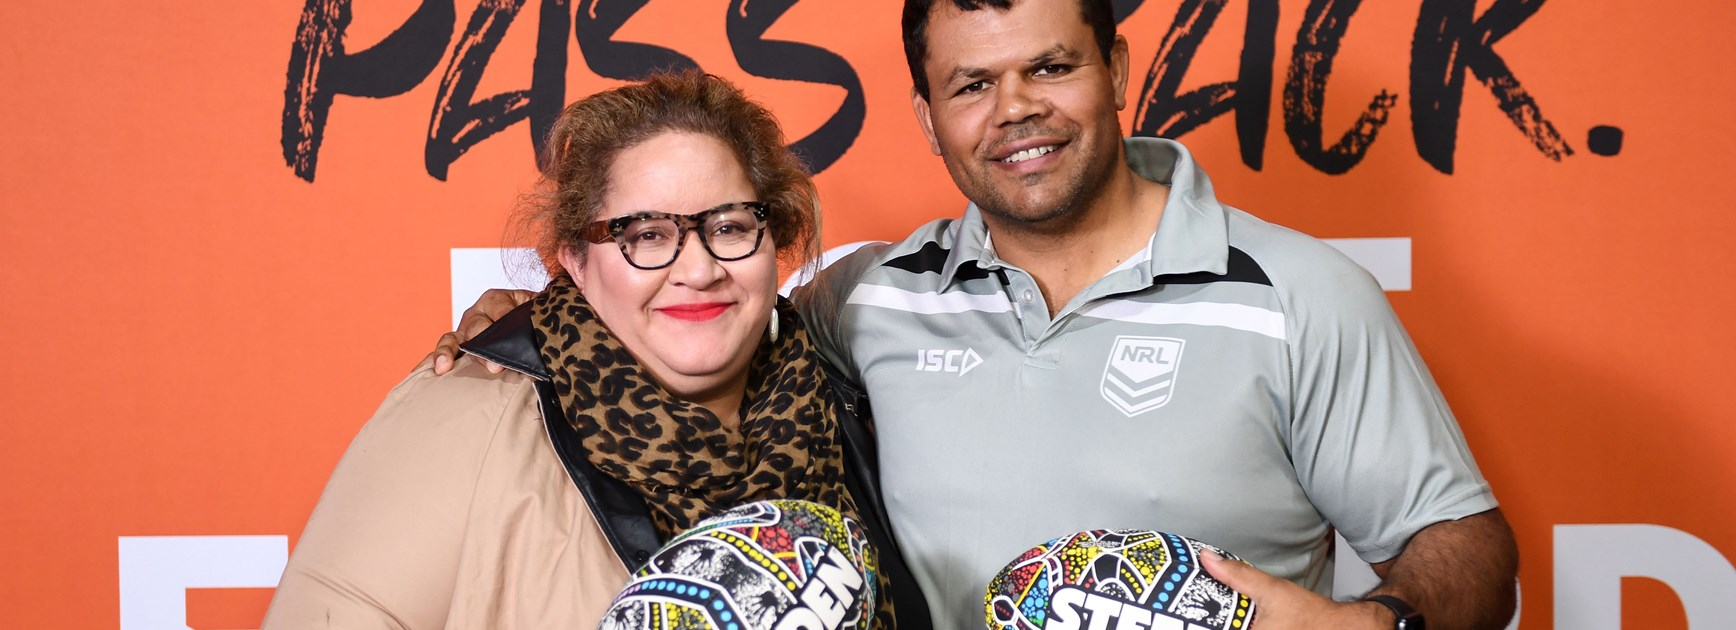 Megan Davis and Dean Widders at the 2020 NRL Indigenous Round launch.